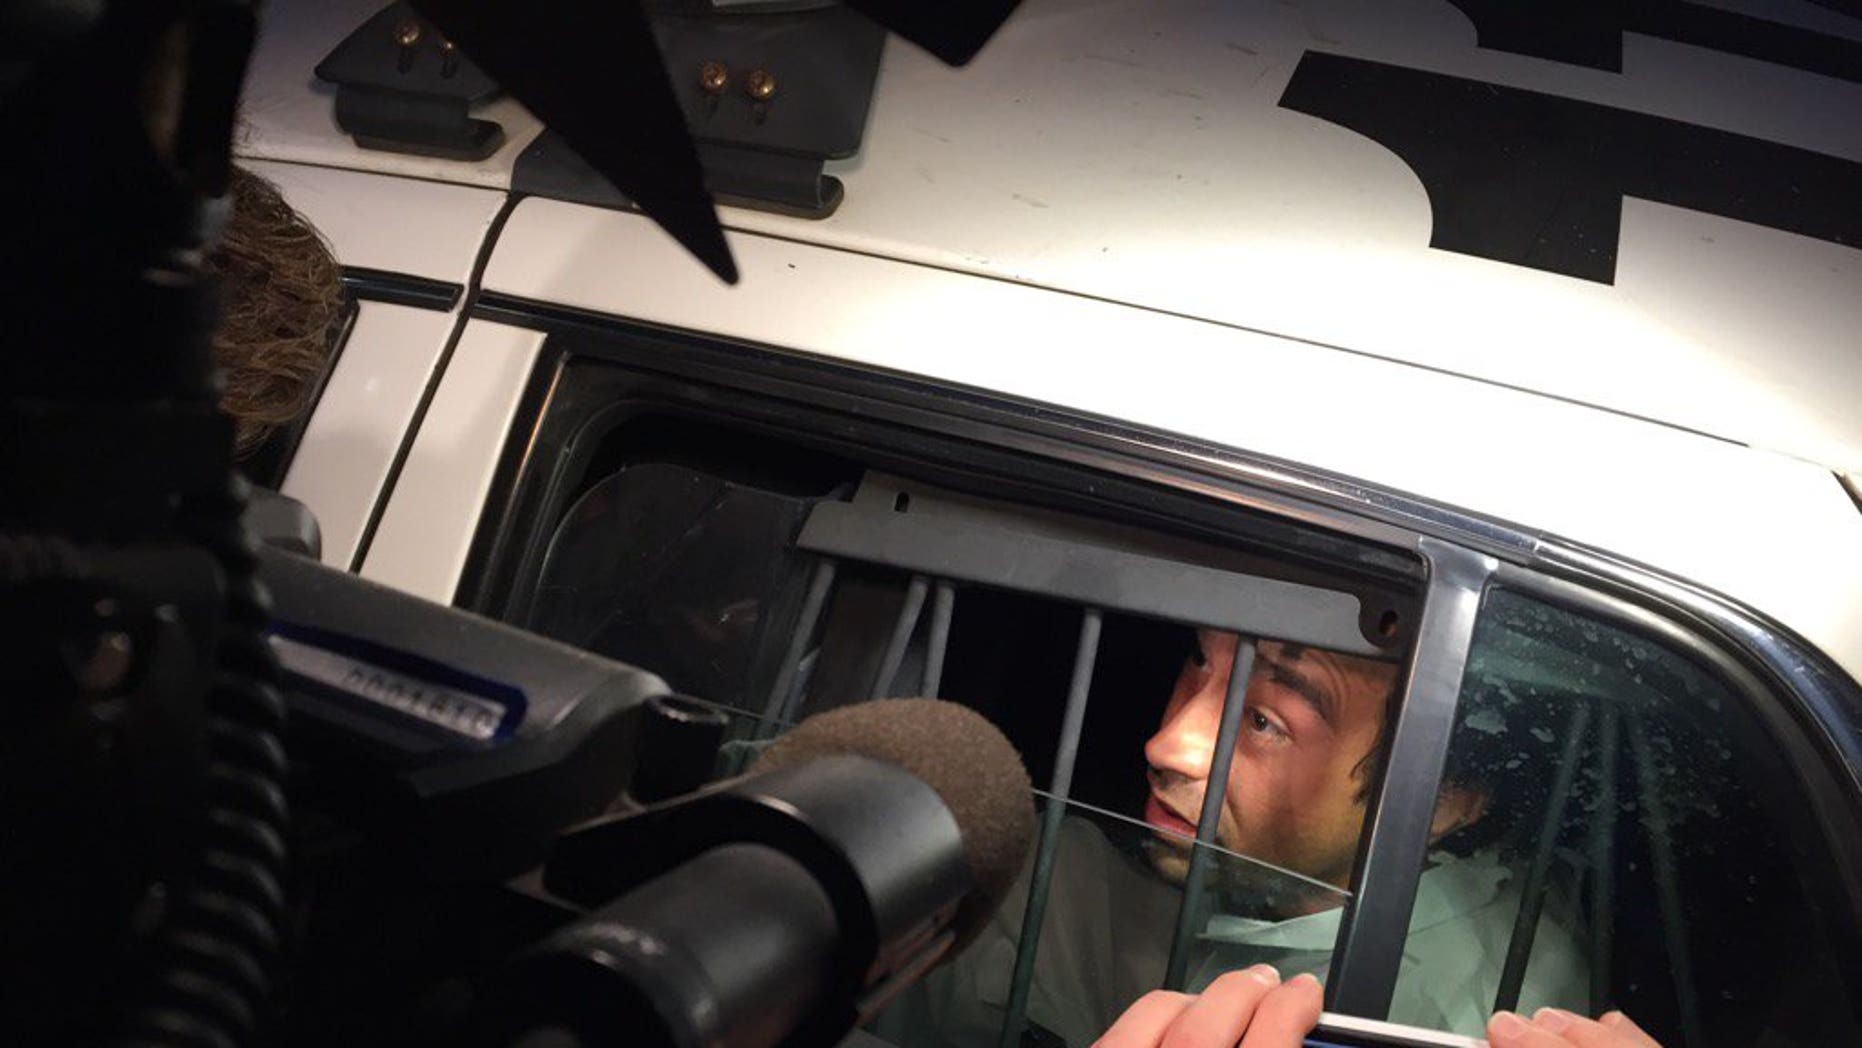 Suspect Anthony Padgett arriving at a jail for booking.